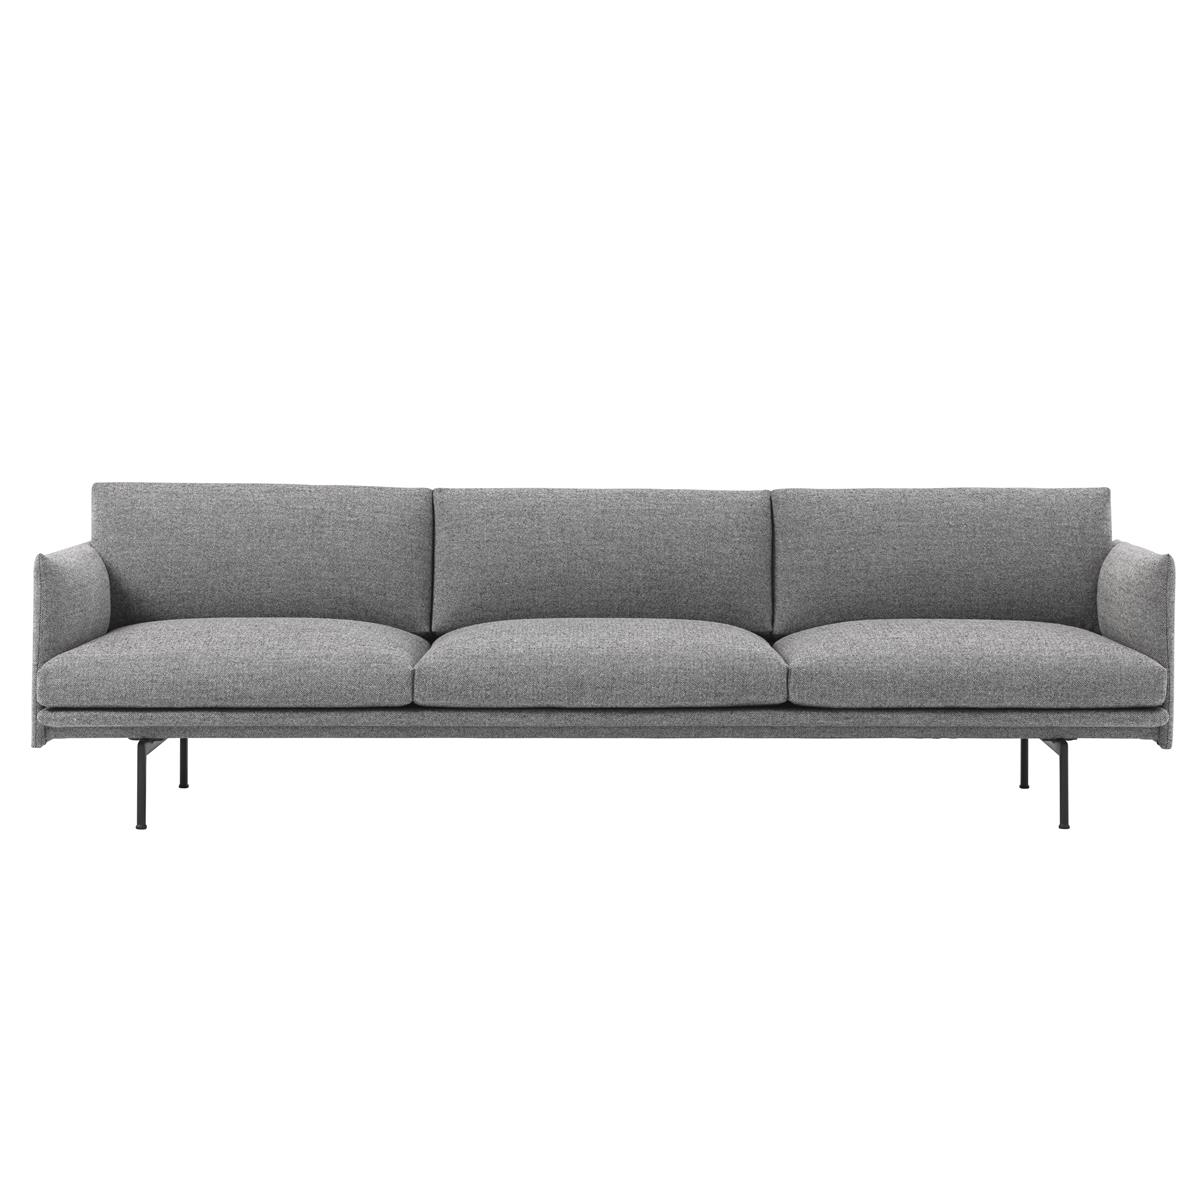 Outline Sofa 3,5 Seater - Kvadrat Hallingdal